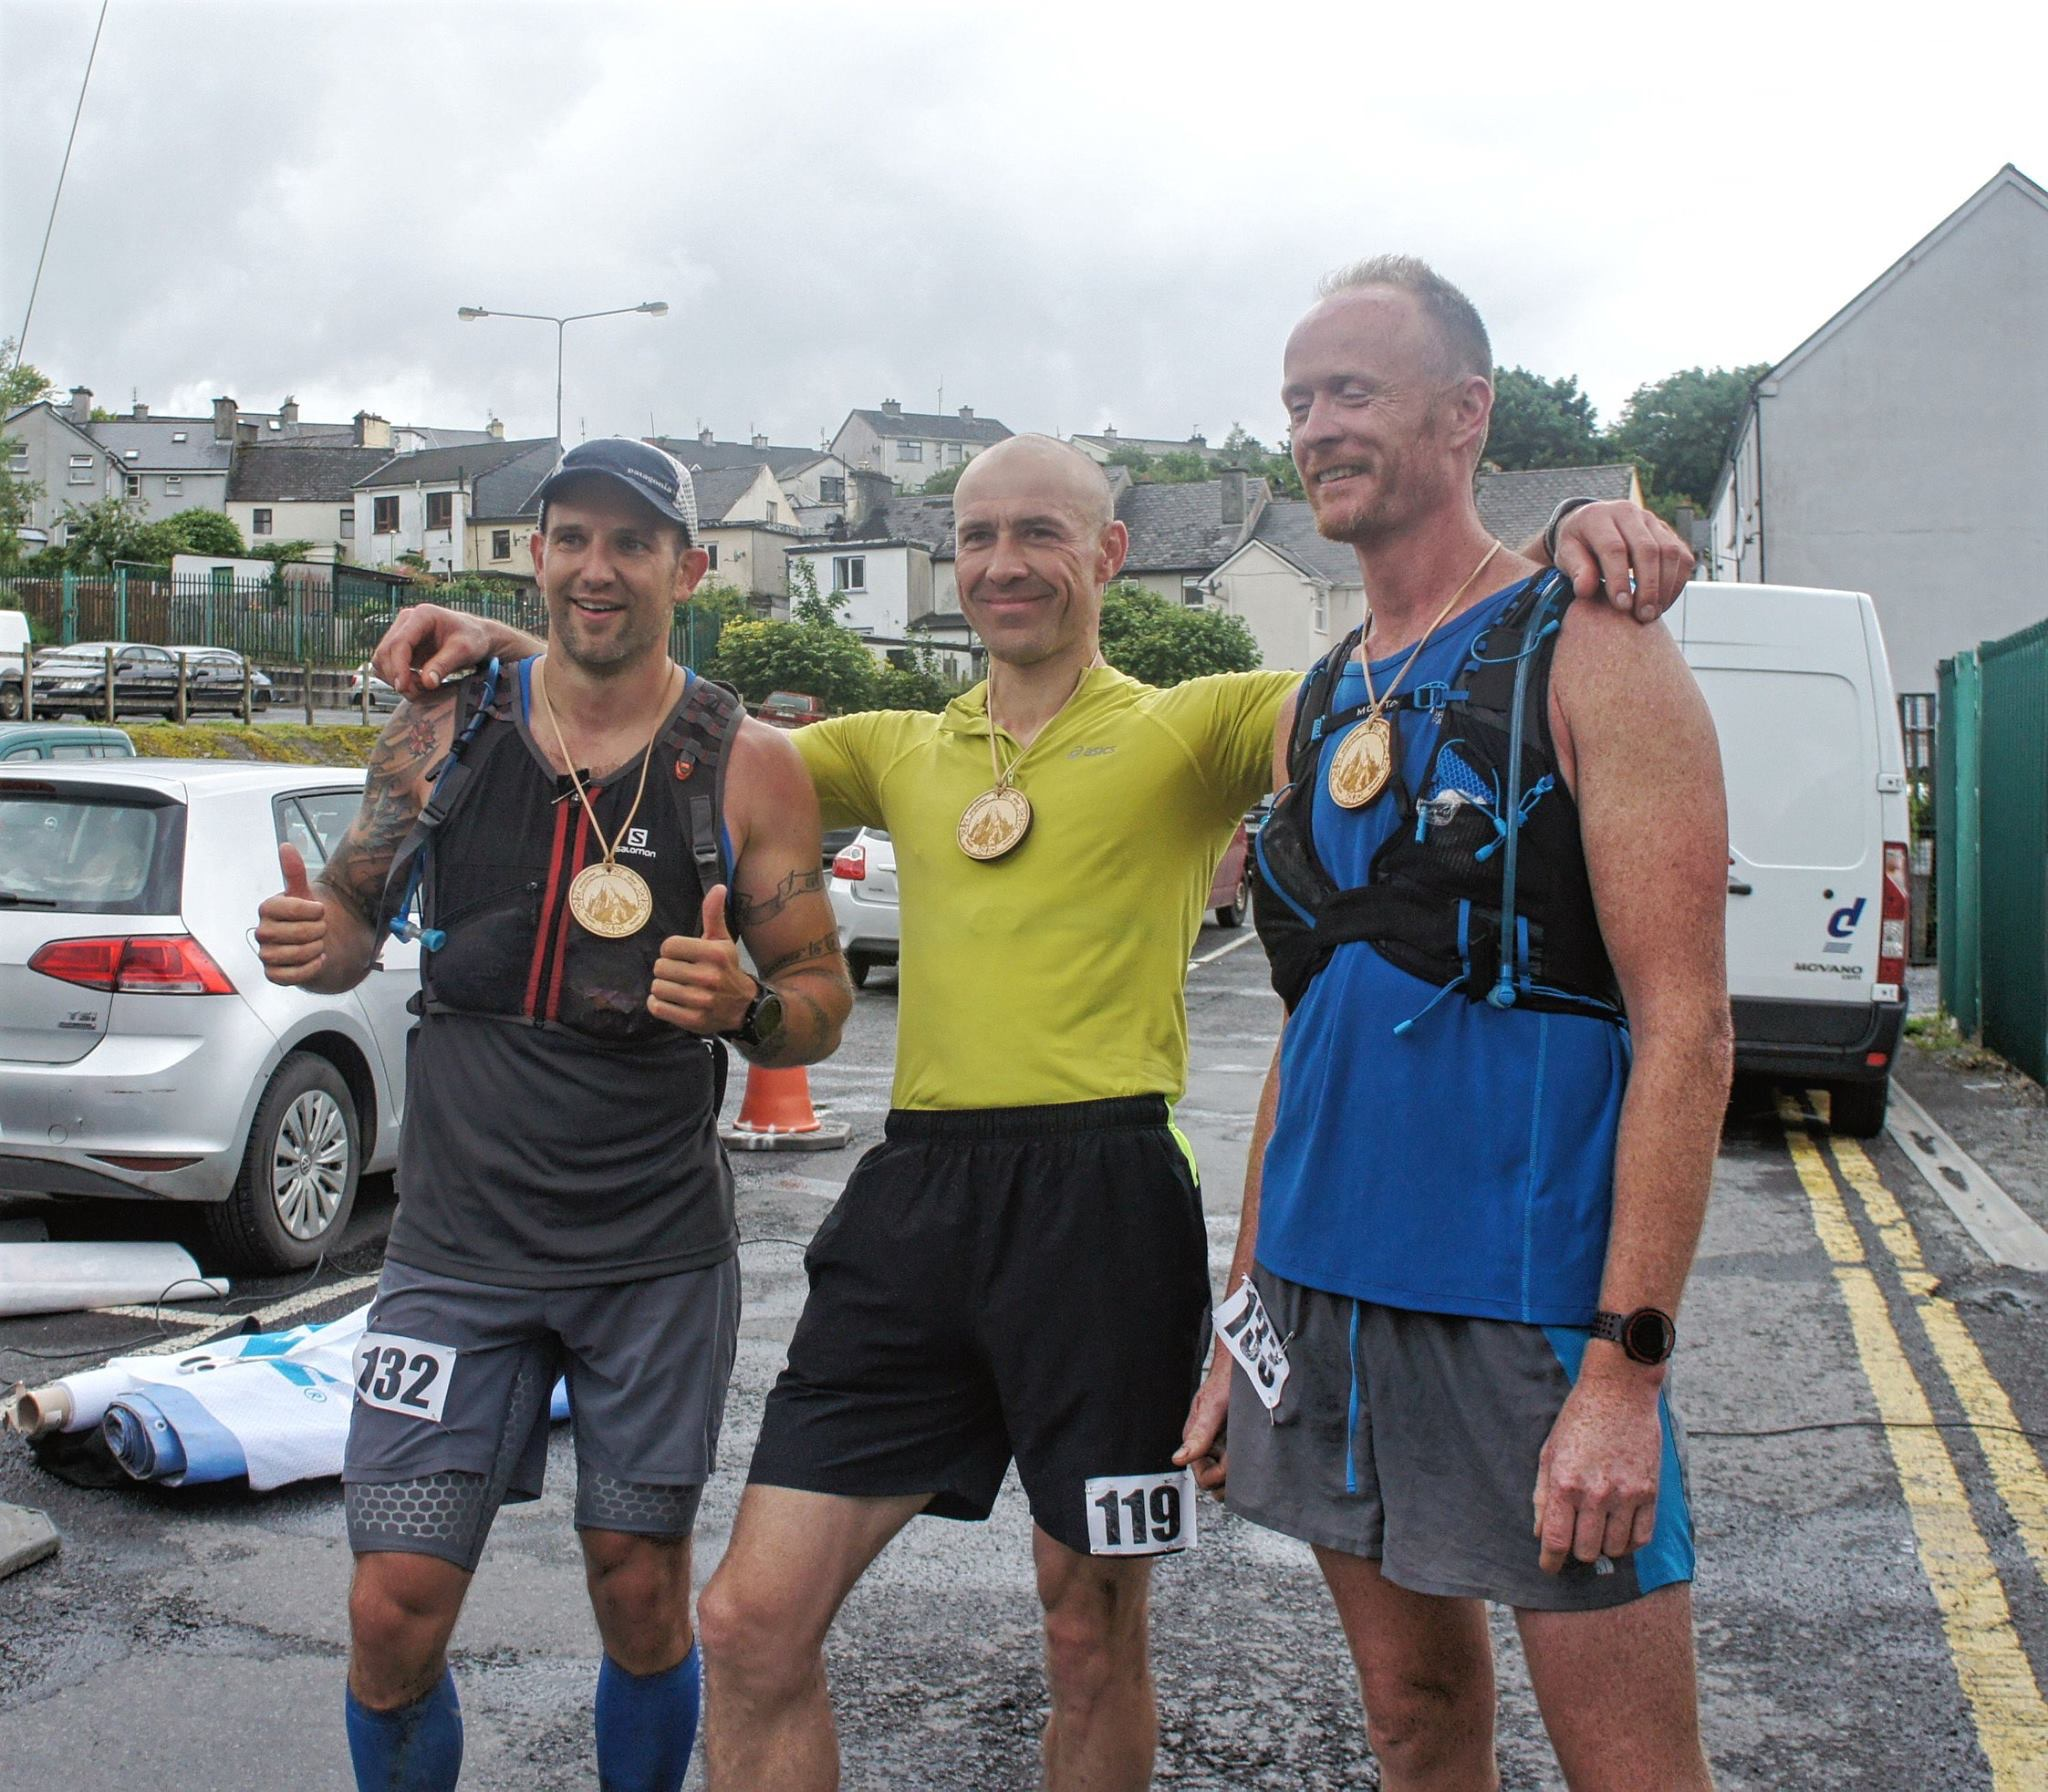 At the finish of the Raw Western Way Trail Ultra,myself 2nd in the 50 Mile,George winner of the 100 mile and Big Bri winner of the 50 Mile